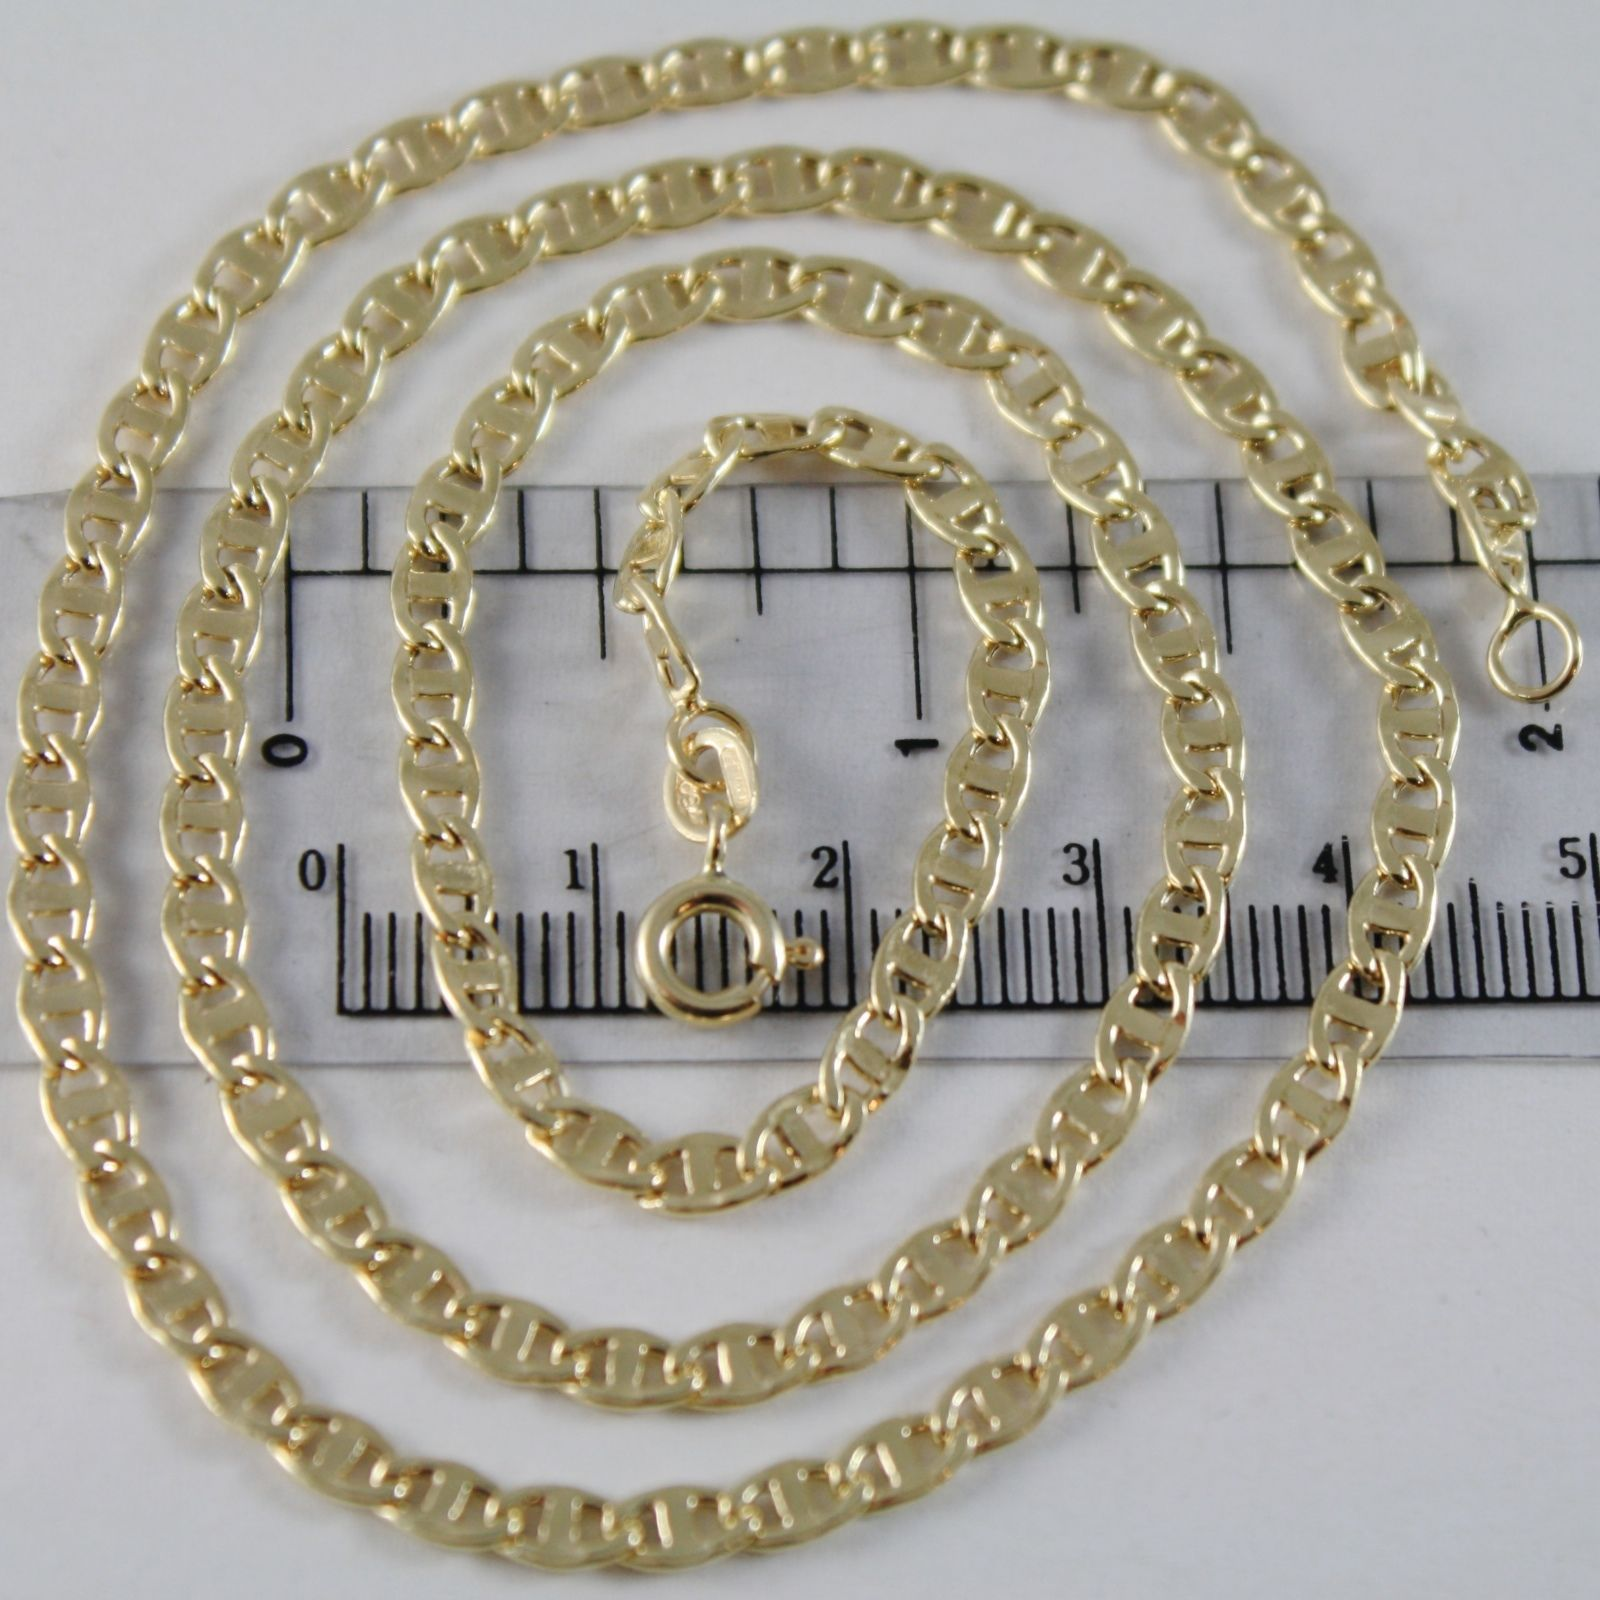 18K YELLOW GOLD CHAIN 3.5 MM FLAT NAVY MARINE MESH 19.70 INCHES MADE IN ITALY